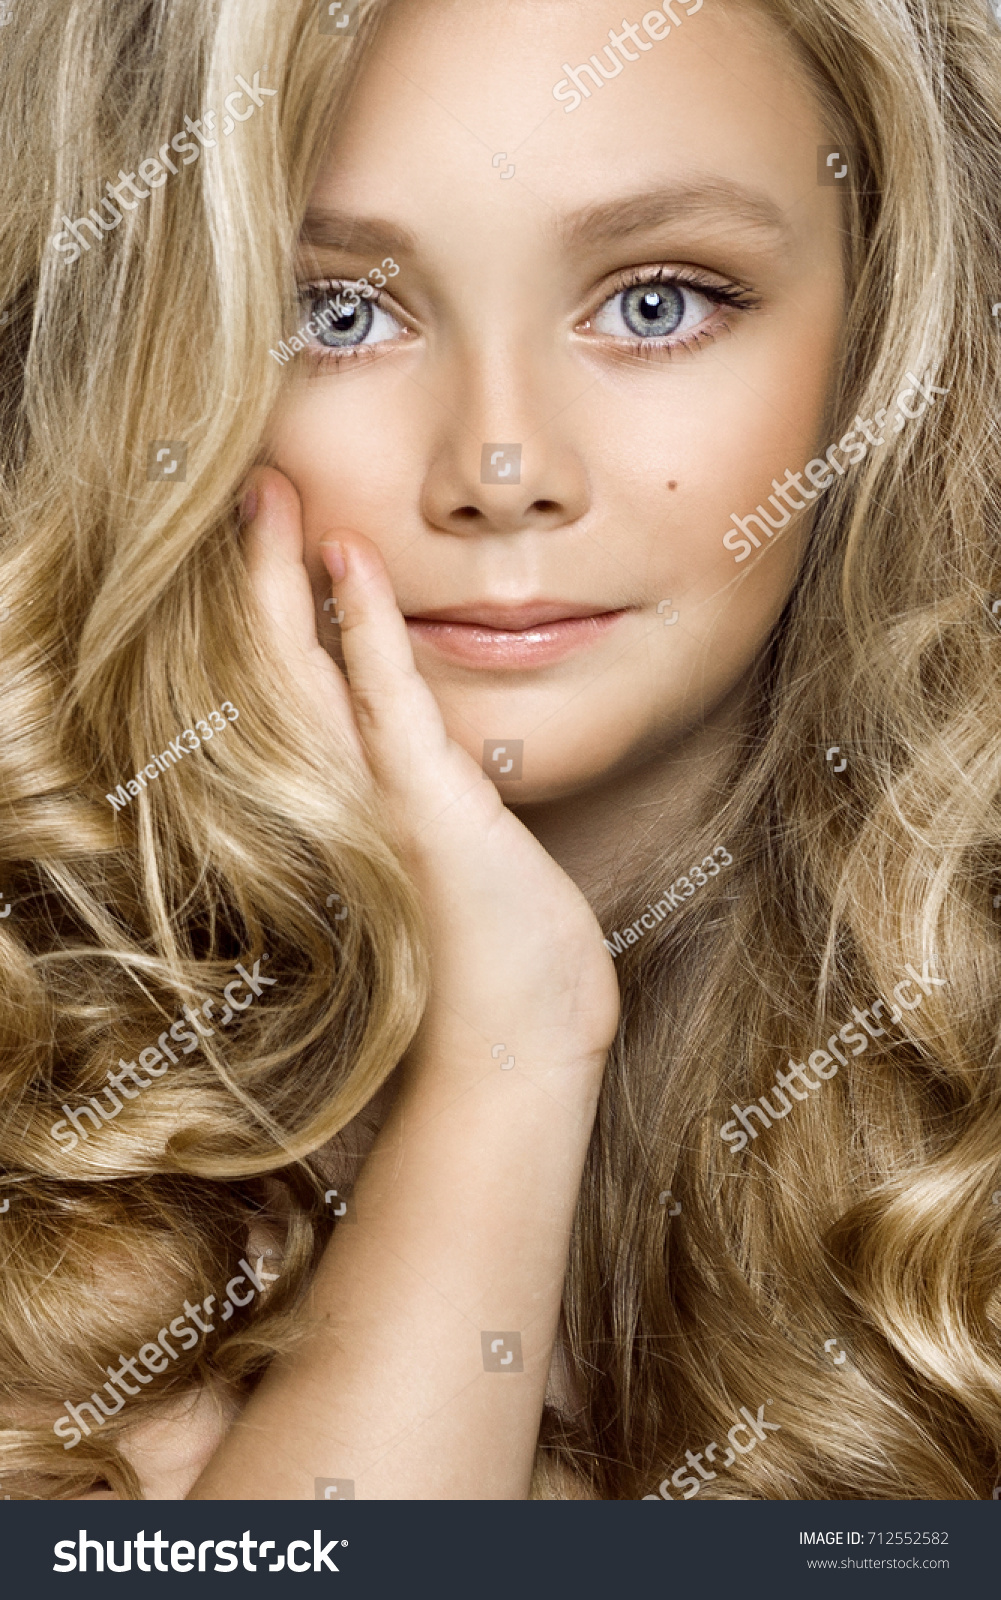 beautiful young blonde model cute girl stock photo (edit now